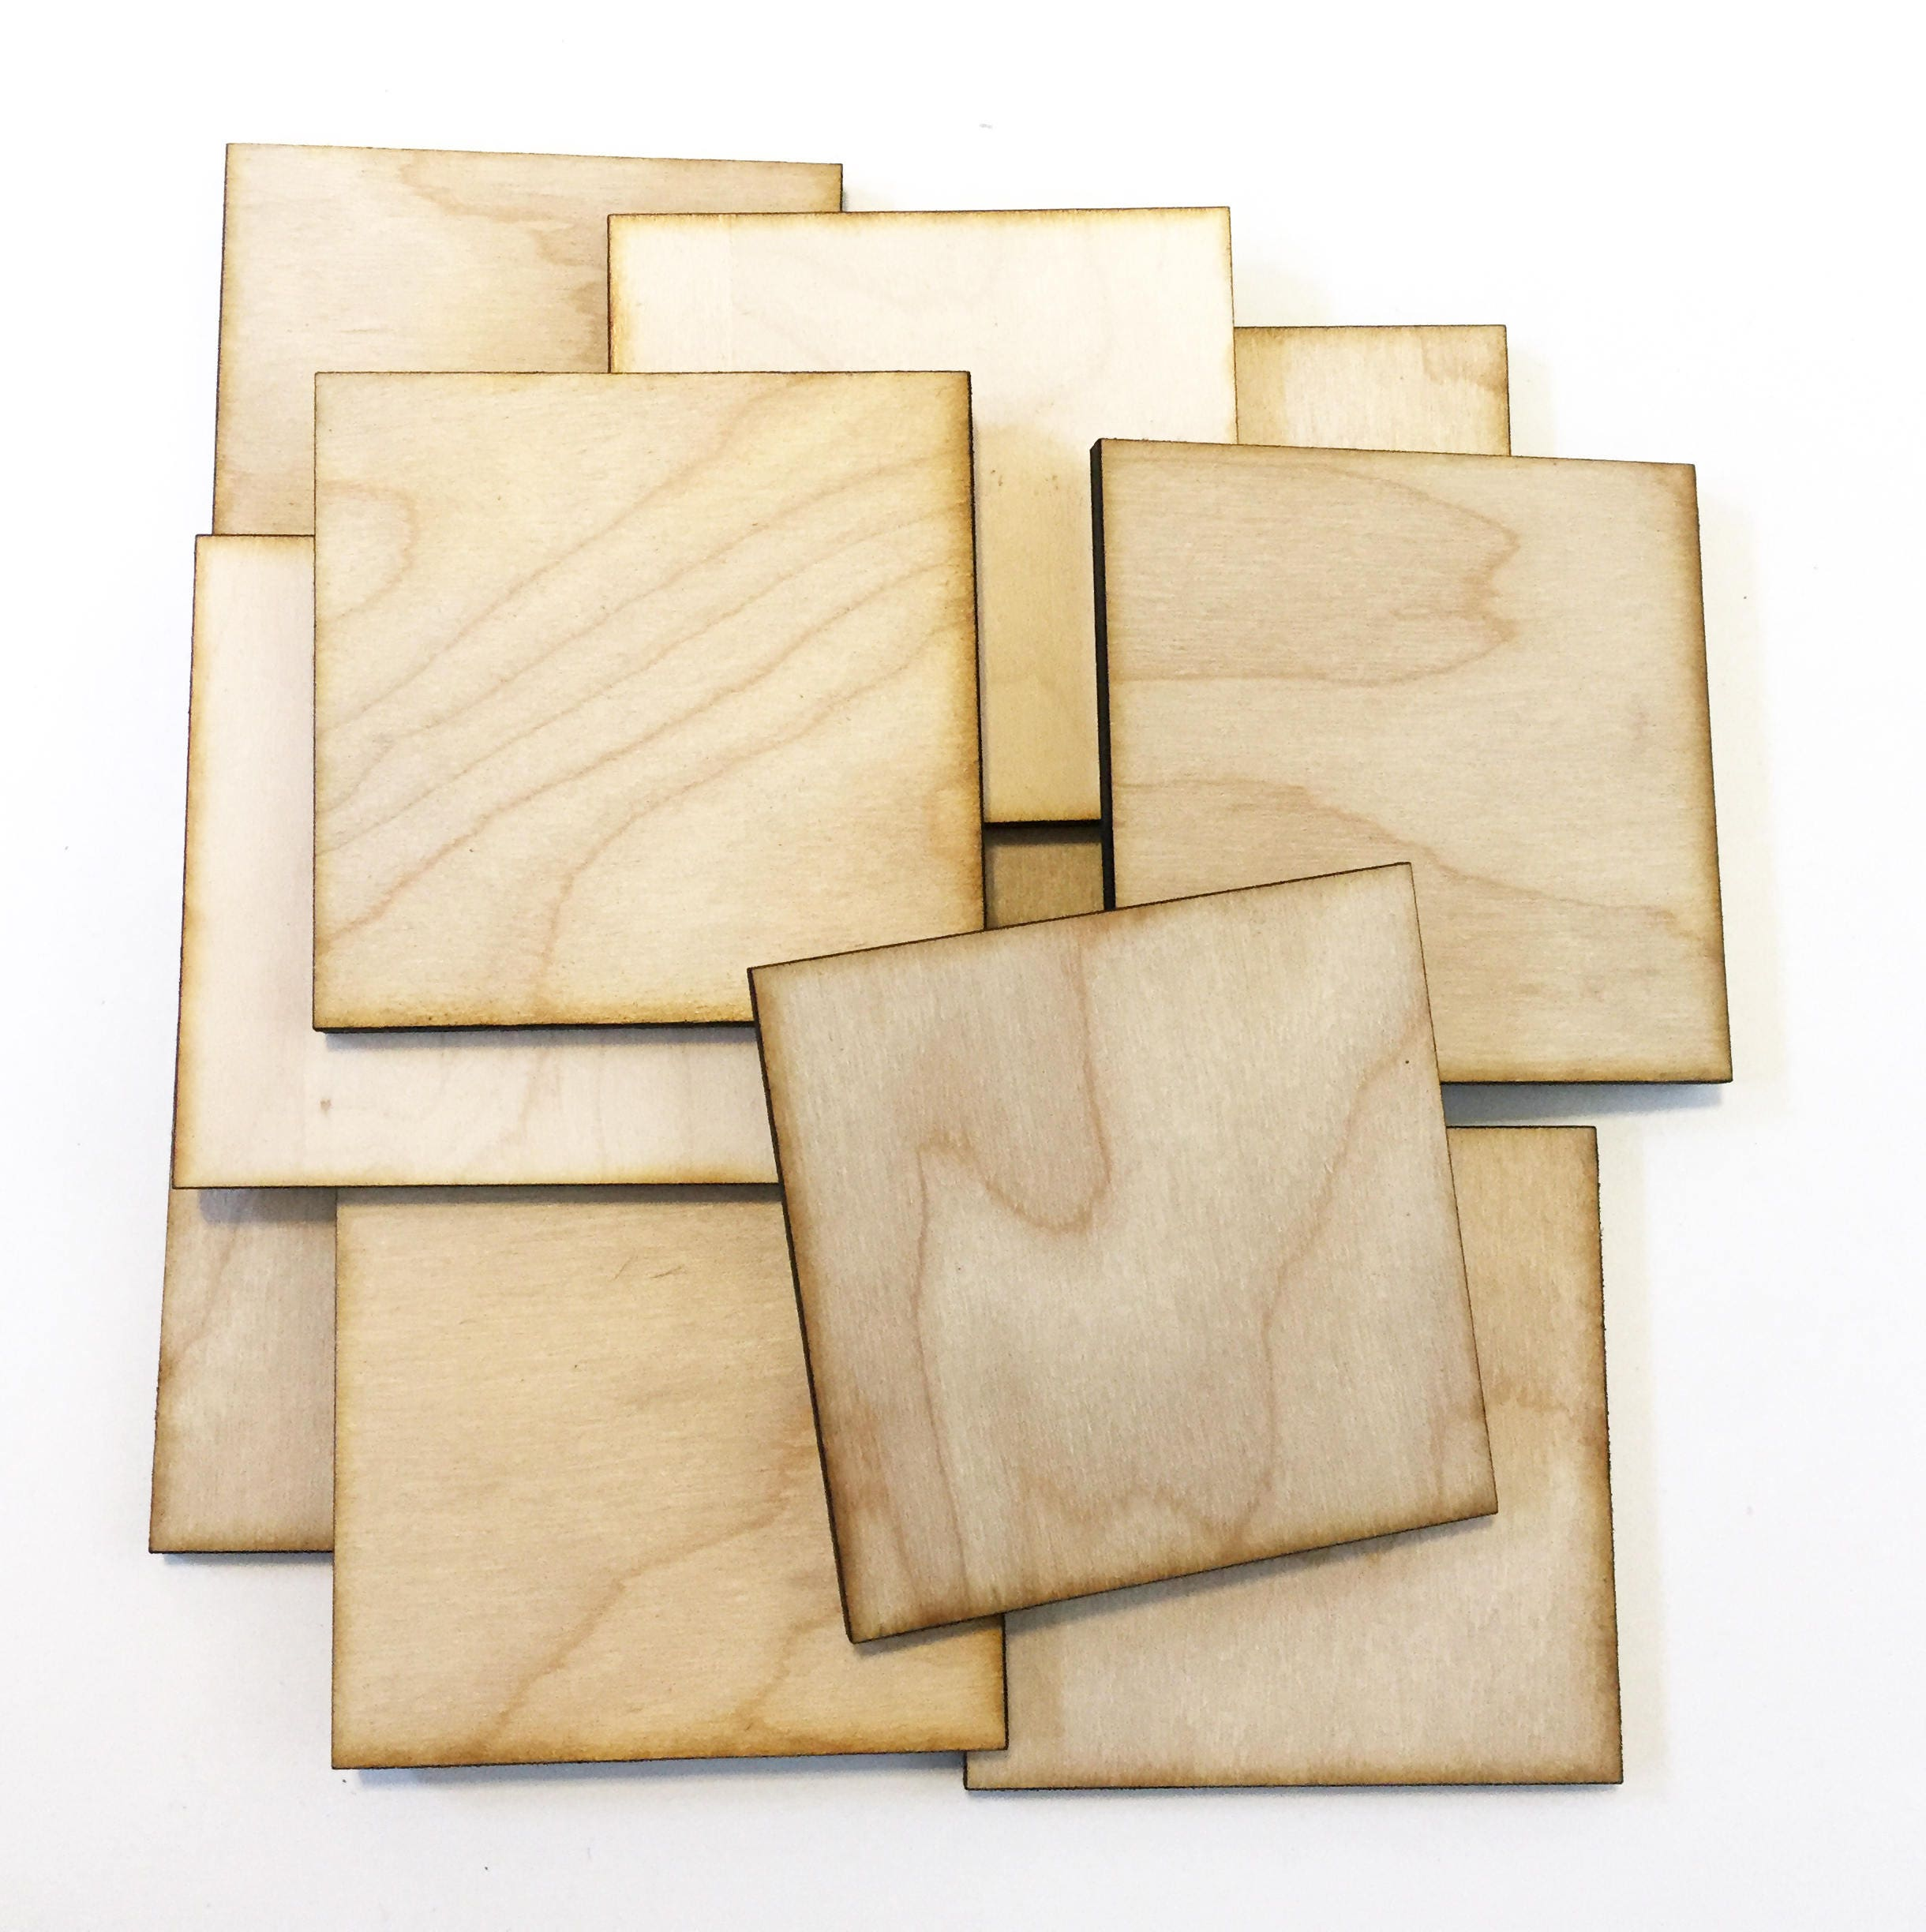 Unfinished wood craft pieces - Sold By Lightninglasercuts